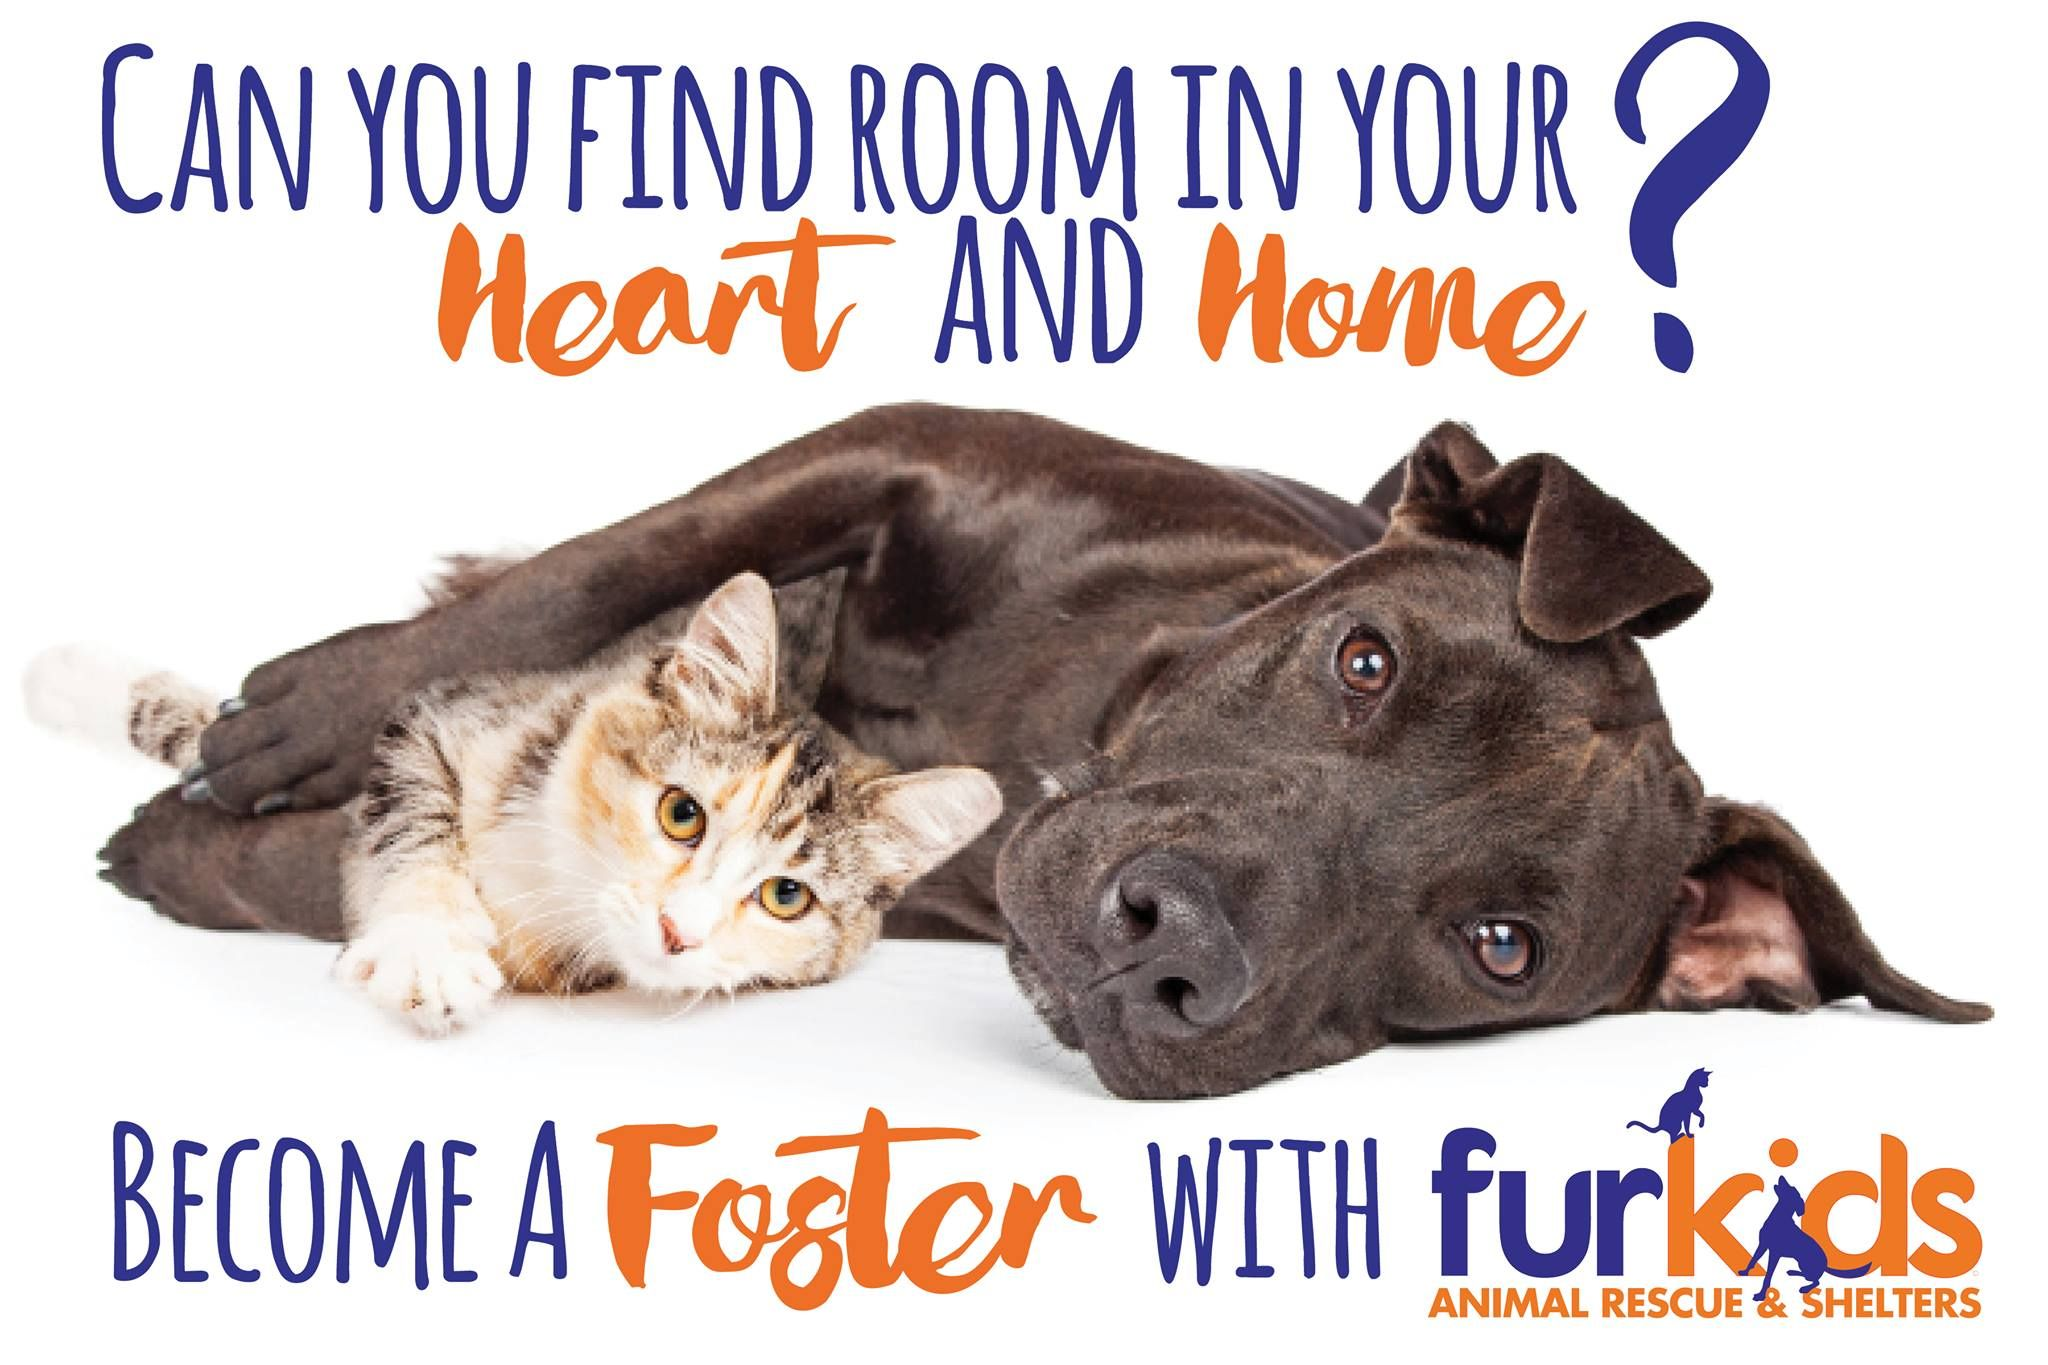 Pin By Suzanne On Save Rescue Assist All Animals Animal Rescue Shelters Pet Adoption Animal Rescue